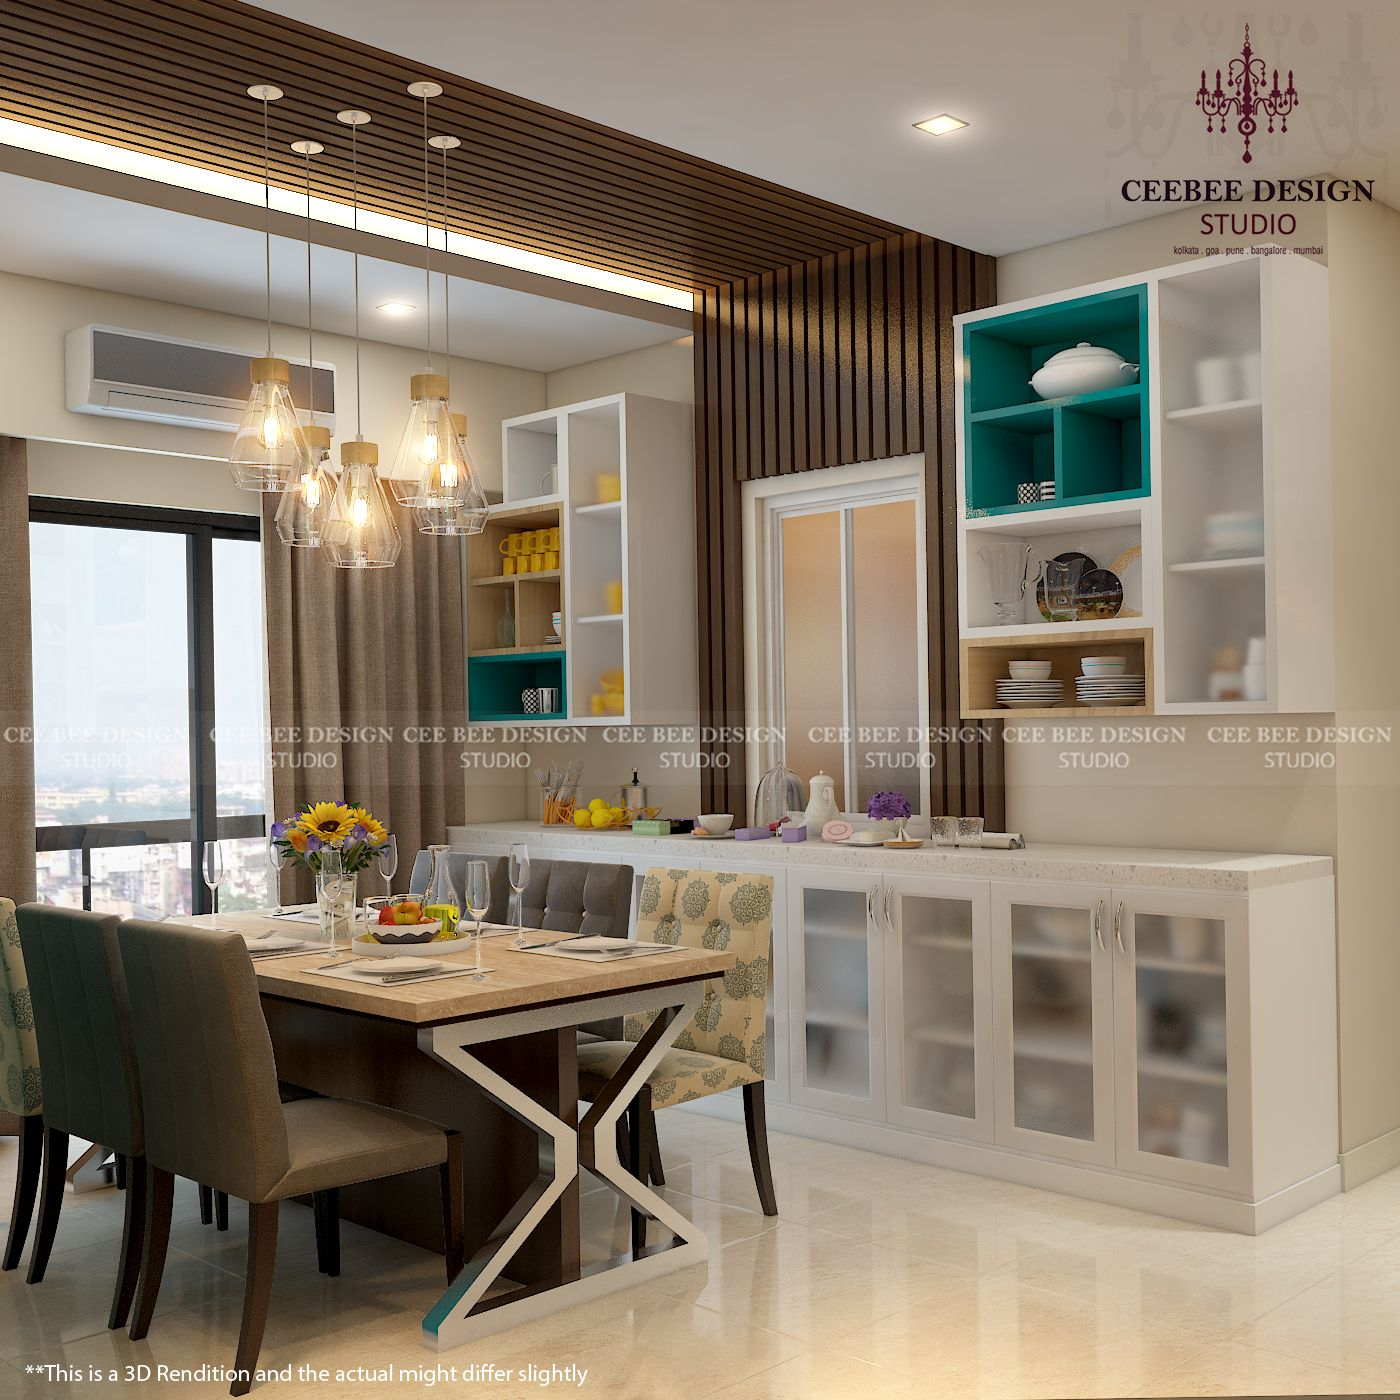 Home Design Ideas Bangalore: #dining #kitchen #best3D #interiordesigner #interiordesign